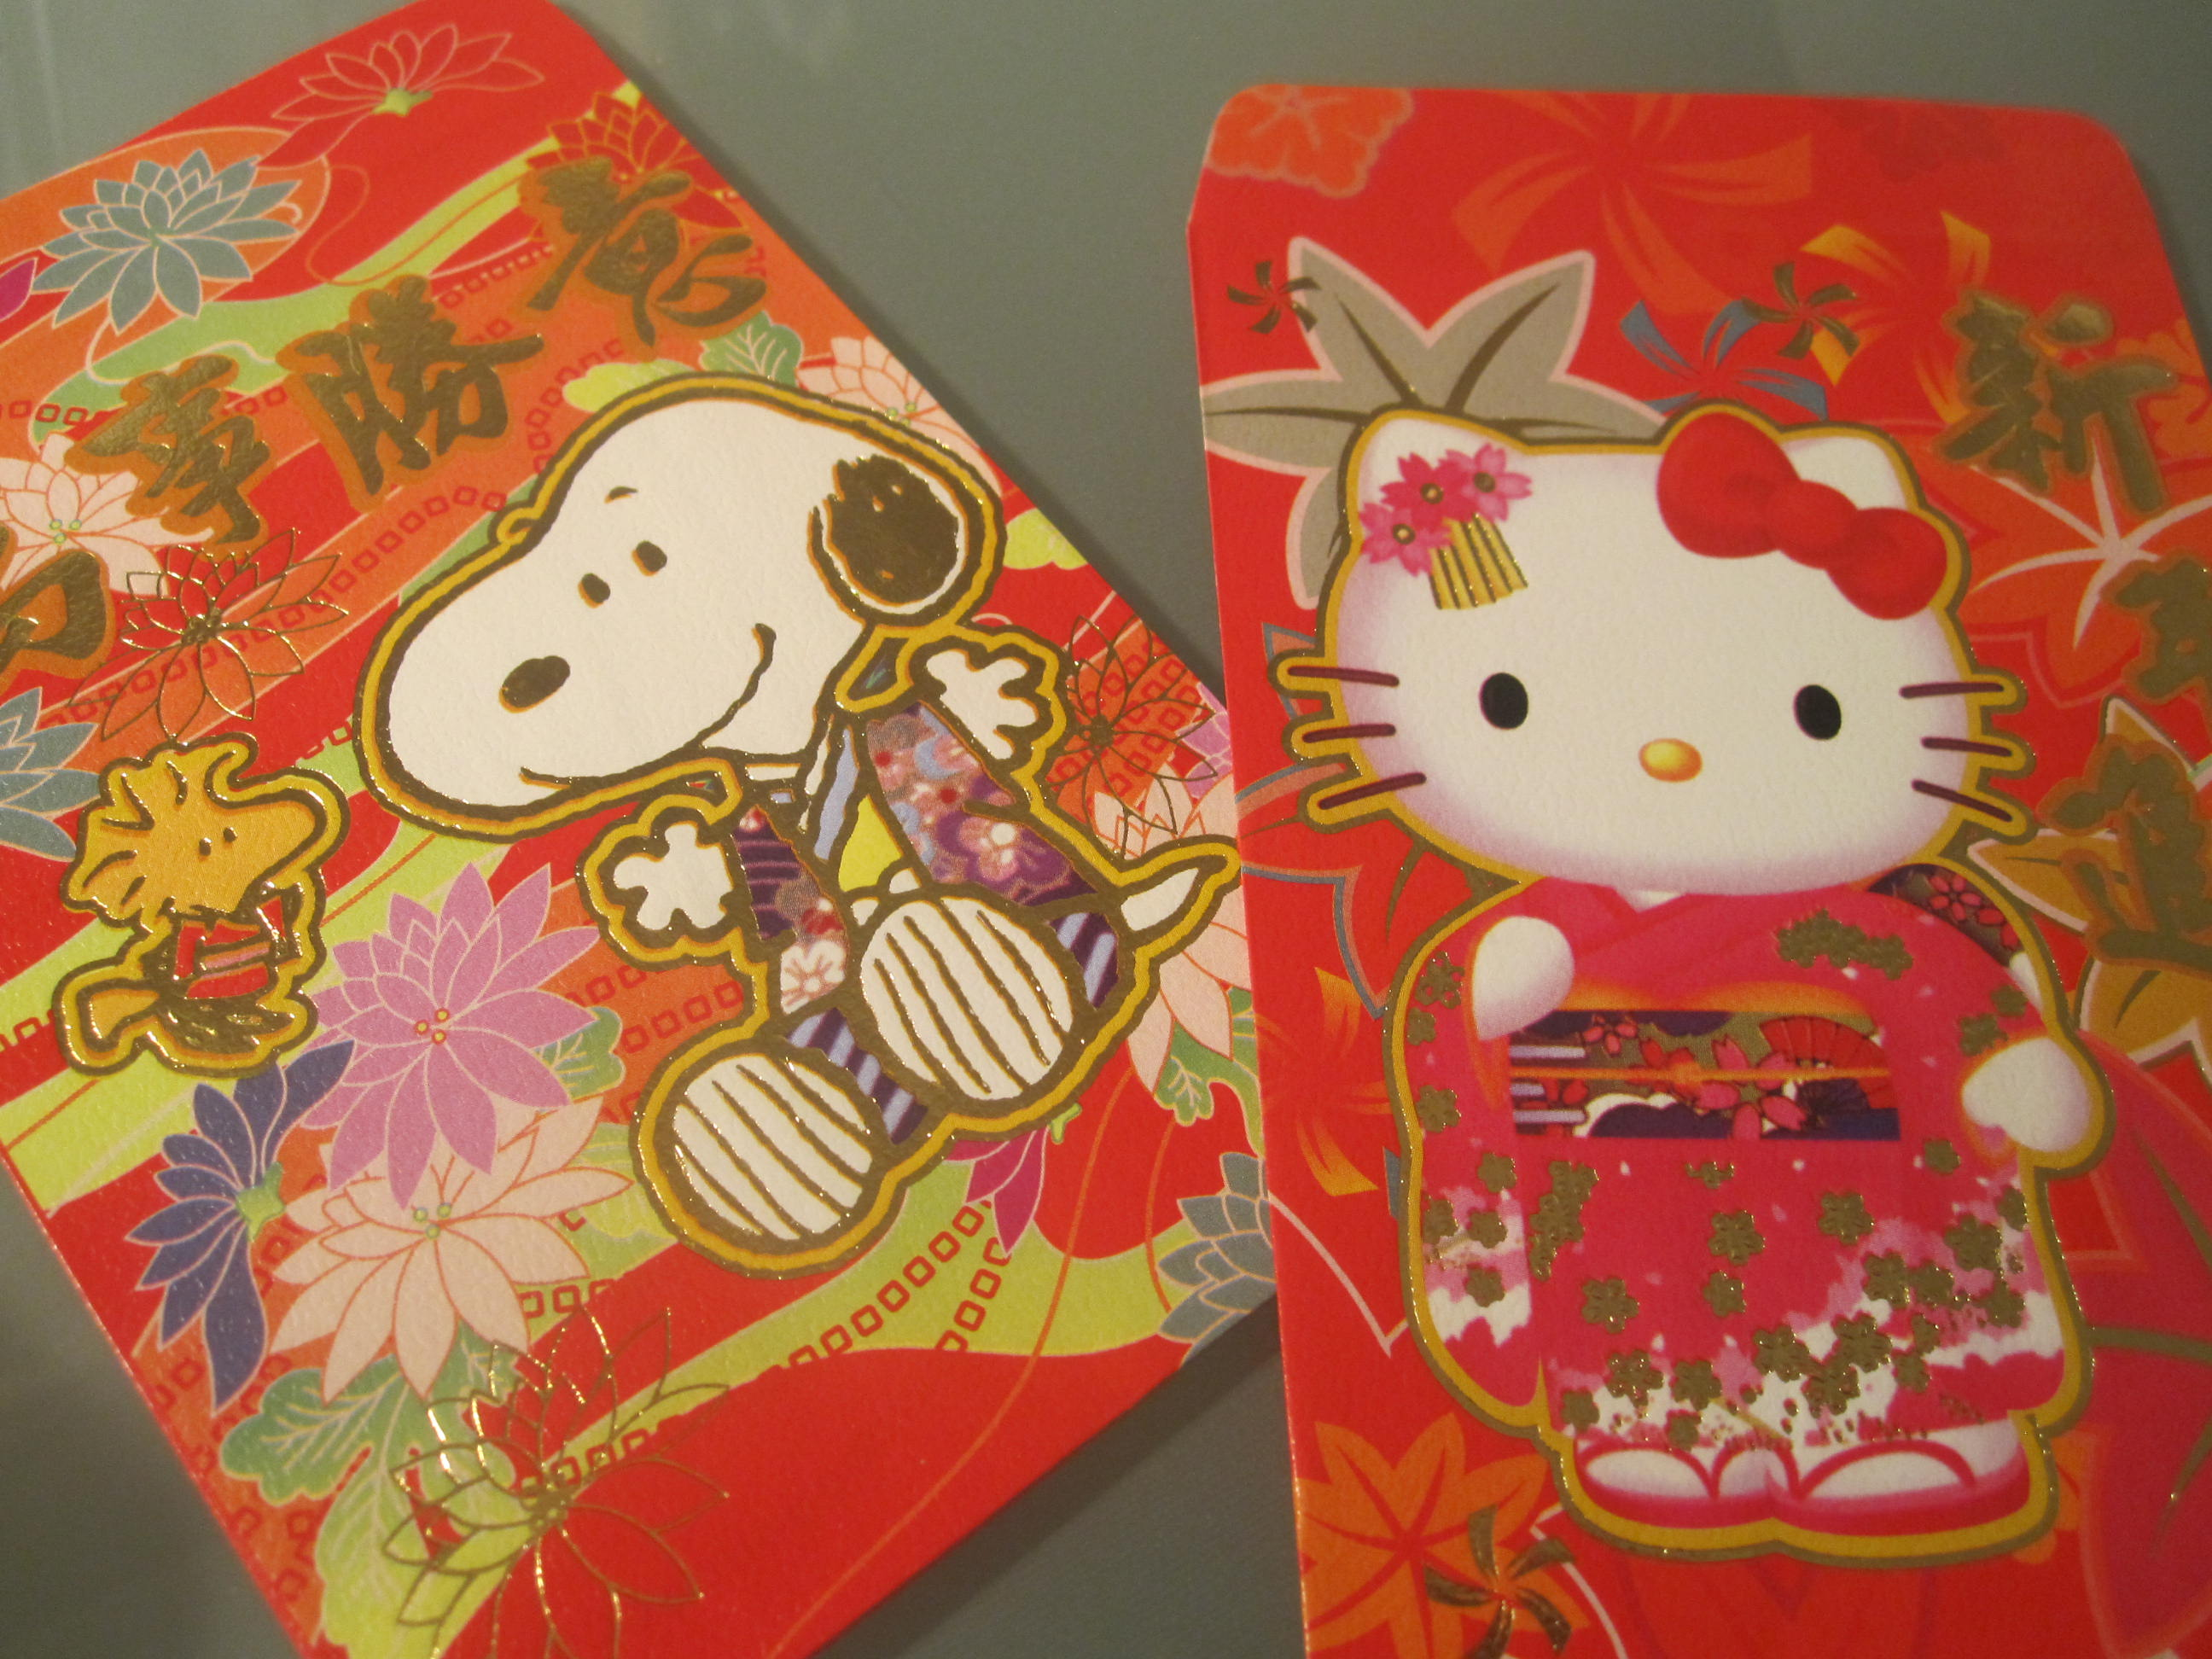 according to wikipedia red envelopes are presented on lunar new year from married elders to the unmarried or children and contain gifts of money - Red Envelopes Chinese New Year